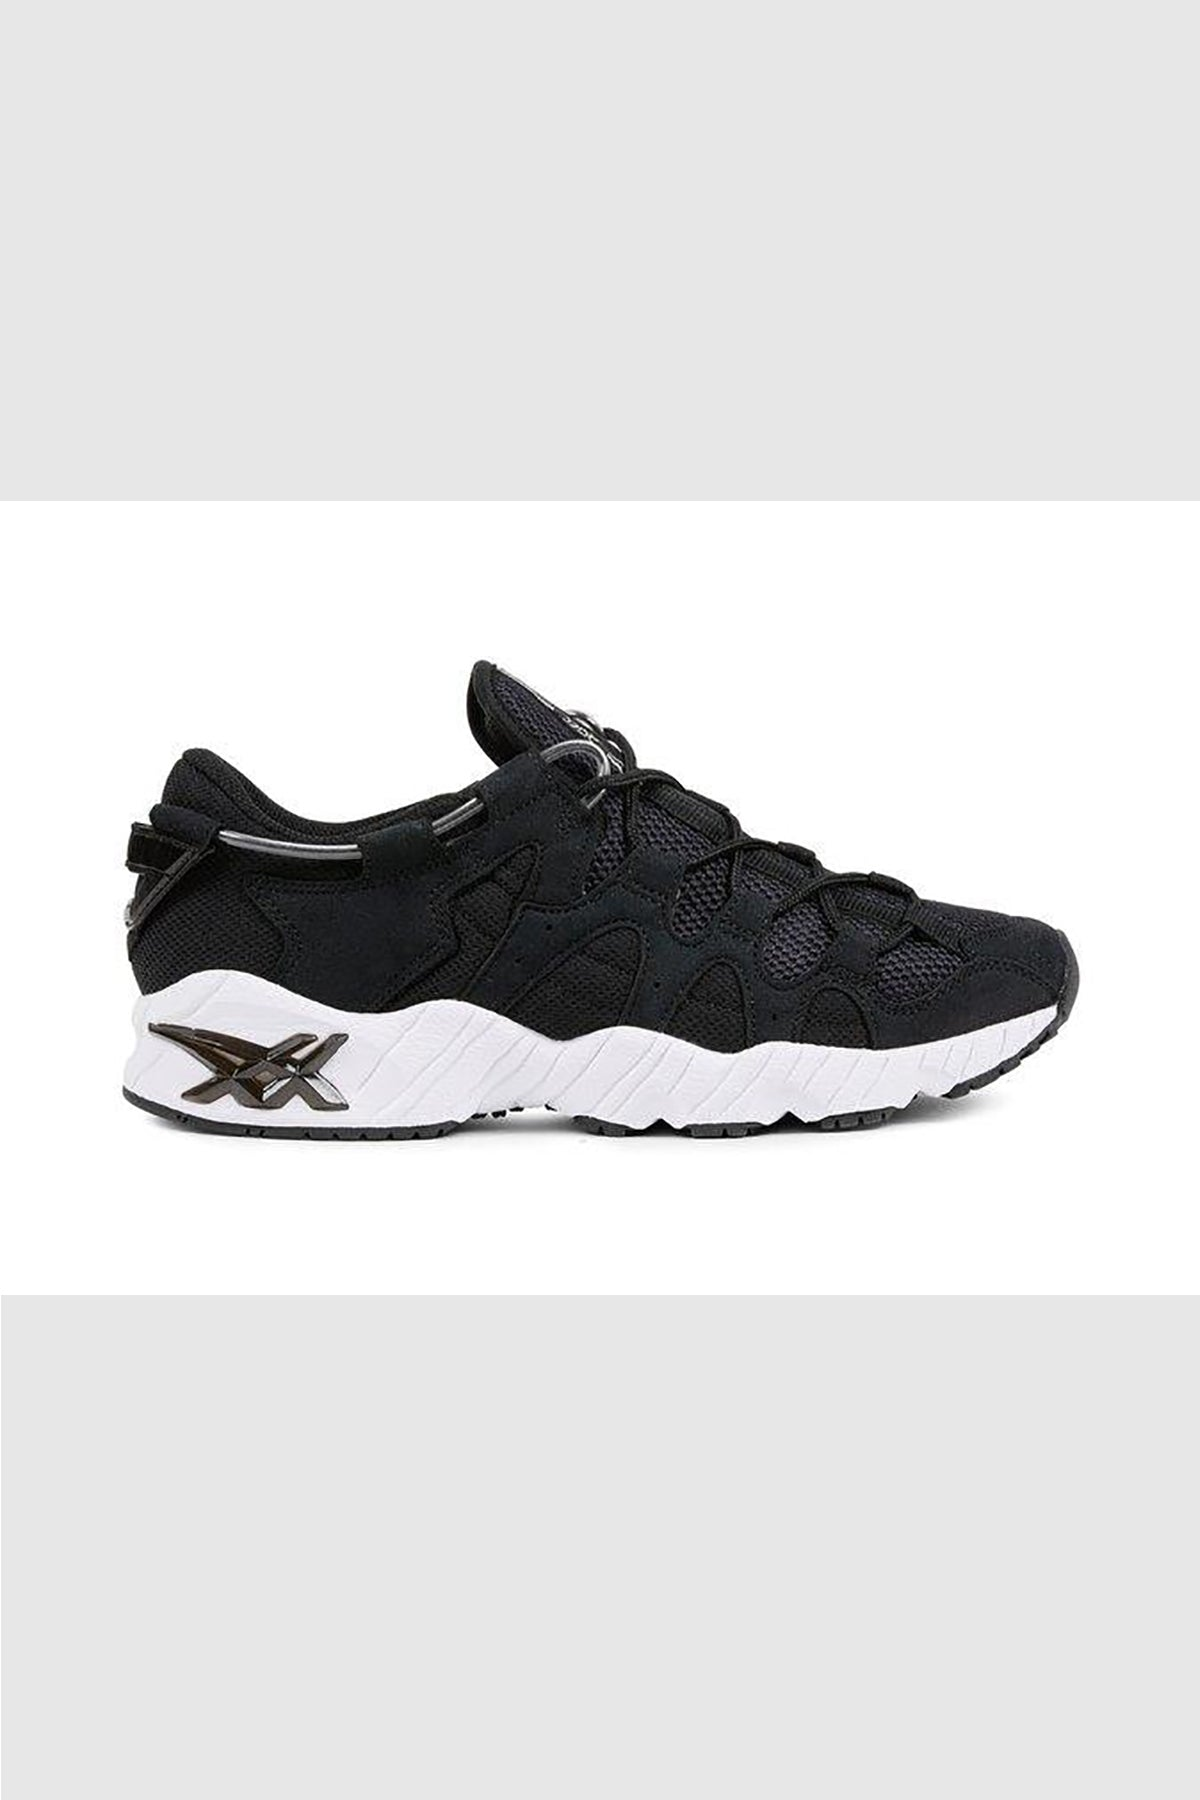 Asics - Gel Mai (Black/ Black)